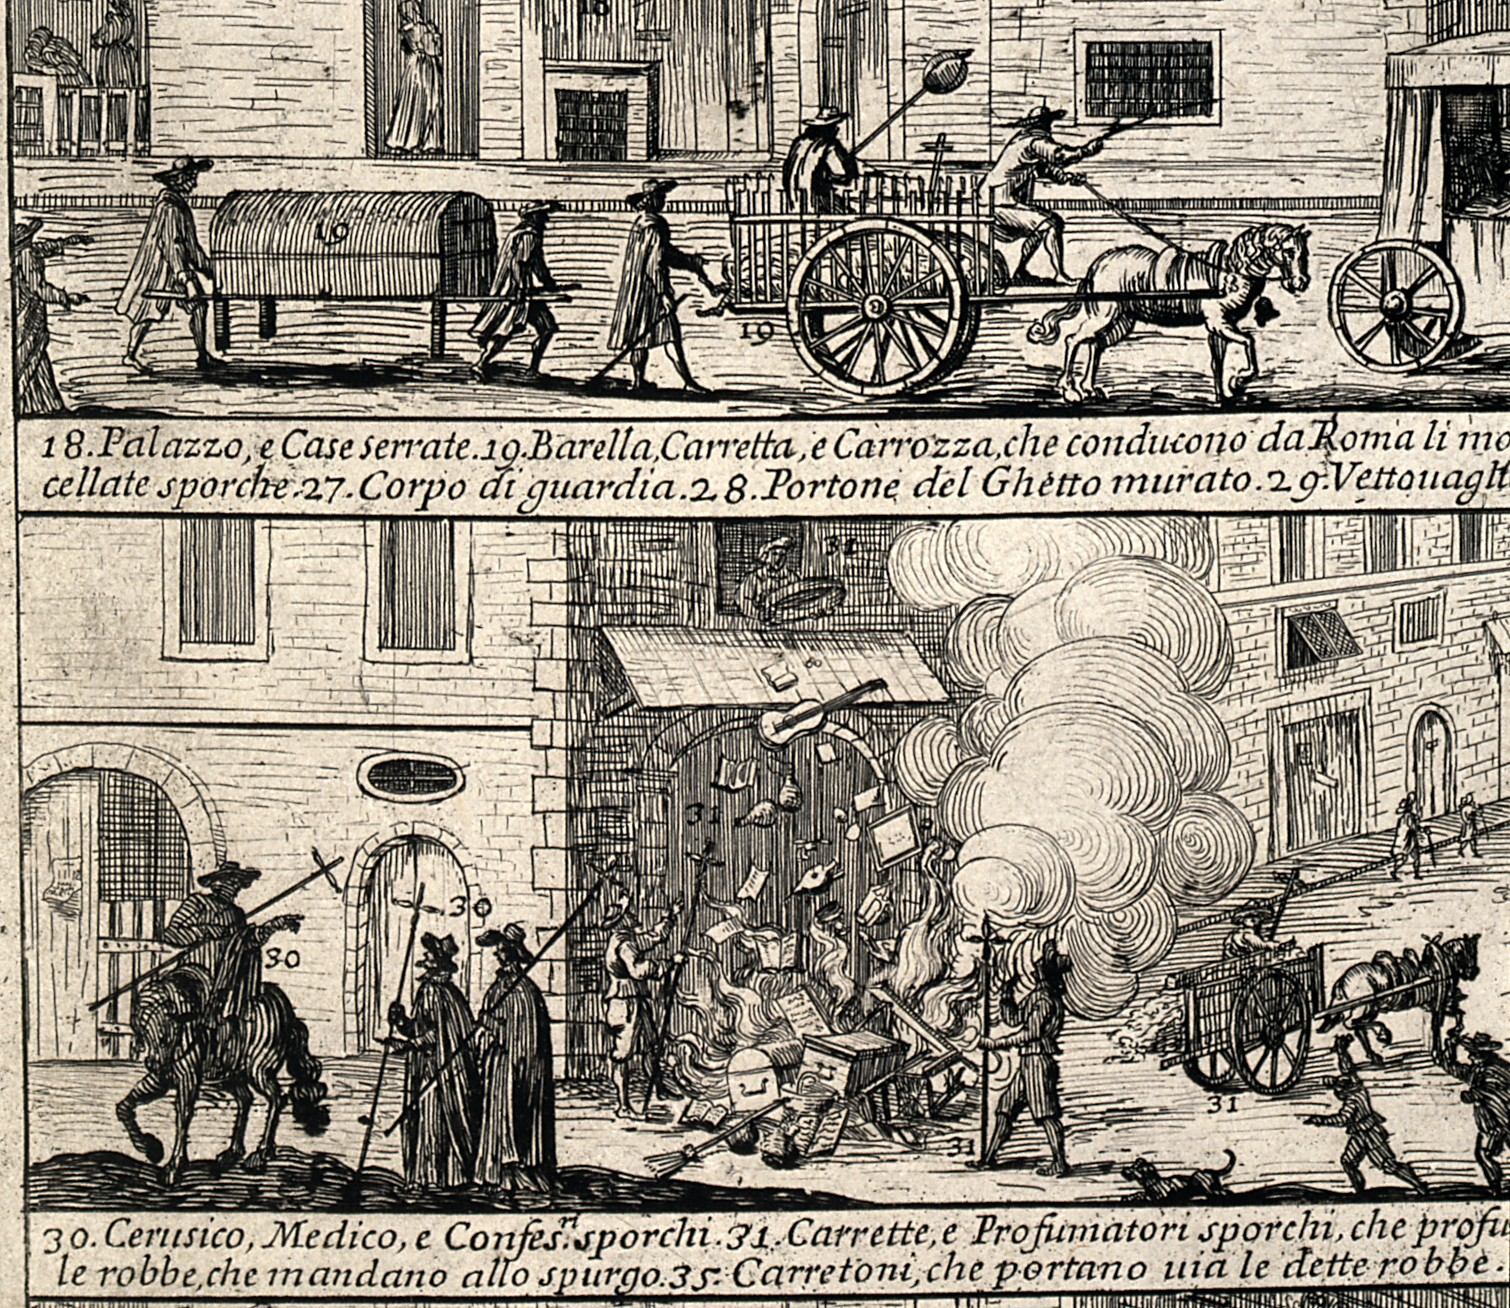 File:Episodes in the plague in Rome of 1656. Etching. Wellcome V0010661.